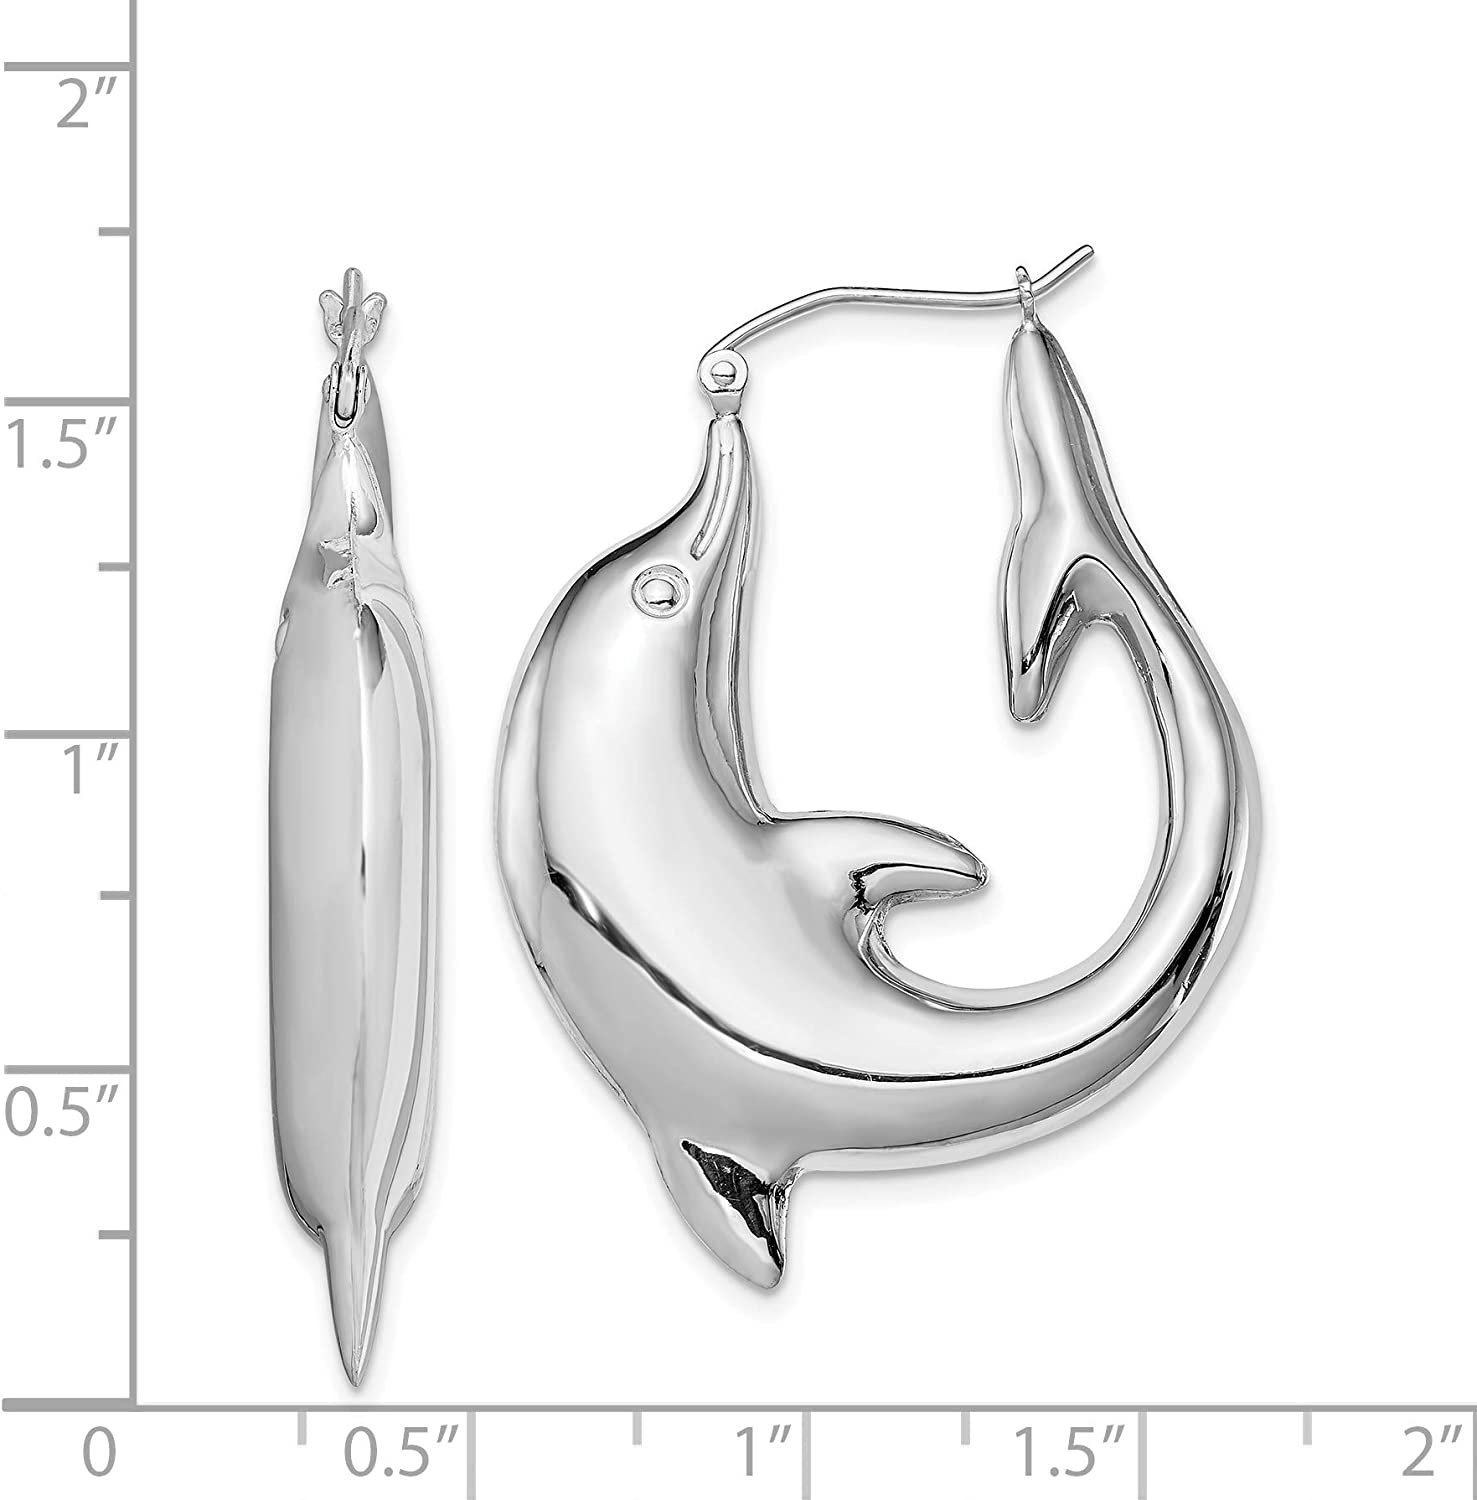 EAR CUFF UNISEX STERLING SILVER DOLPHIN DESIGN FREE GIFT BOX